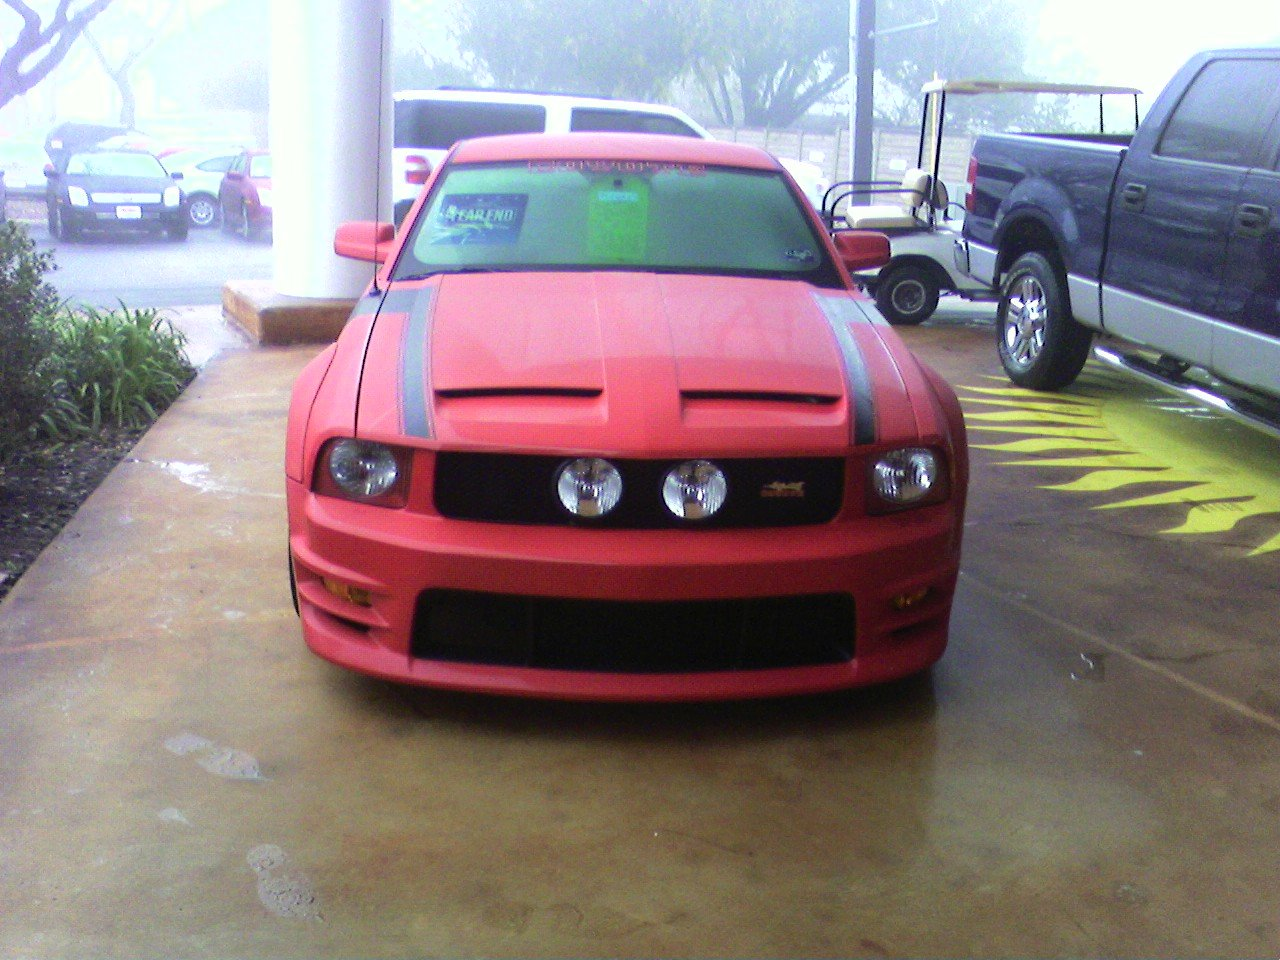 Maxresdefault besides Maxresdefault further Ford Mustang additionally  moreover Maxresdefault. on 1997 ford mustang gt